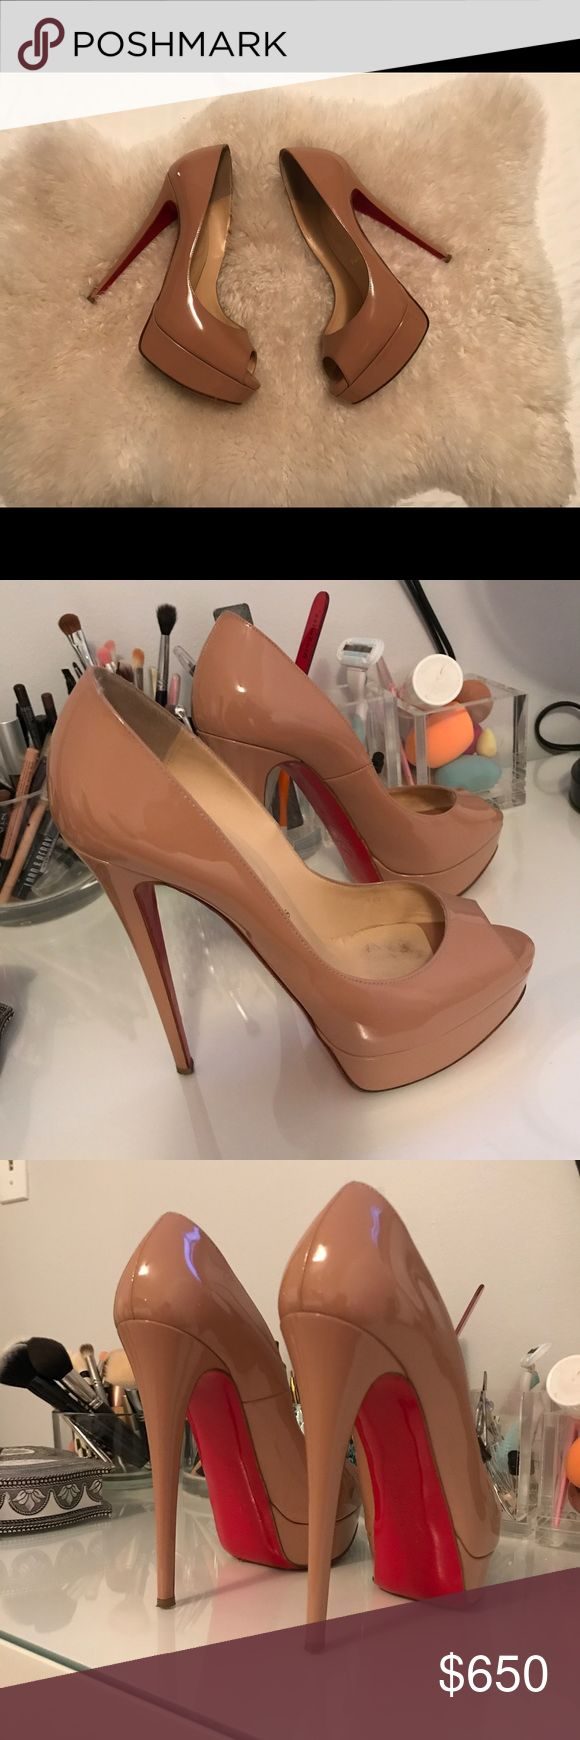 Christian Louboutin Lady Peeps Nude 39 These are always sold out! Always. All the items I have listed come directly from my closet and are 💯% authentic. I paid $1100 with tax for these at the Louboutin store in South Coast Plaza. Christian Louboutin Shoes